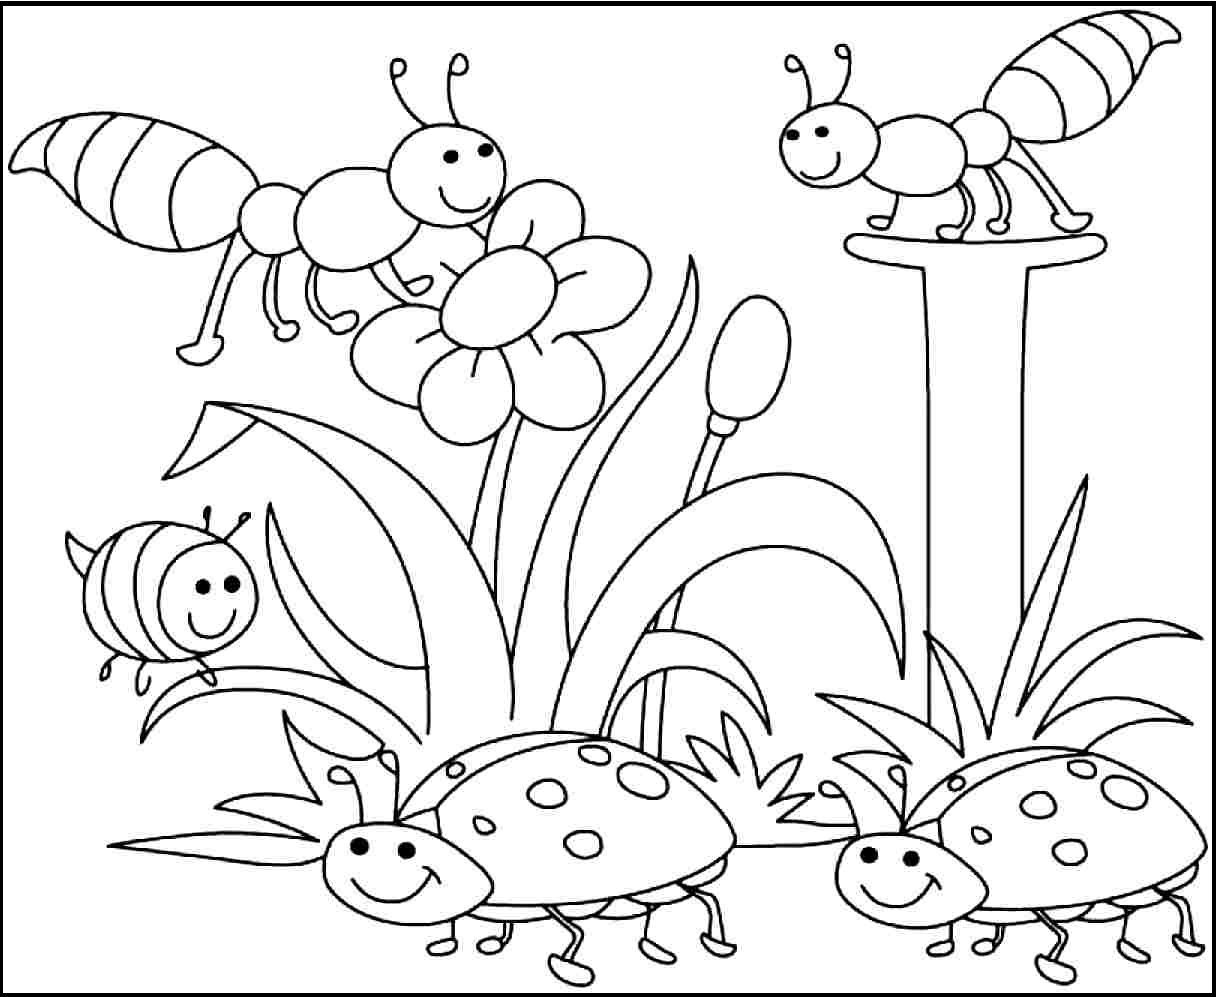 Coloring Pages Free Printable Spring Coloring Pages Kids With